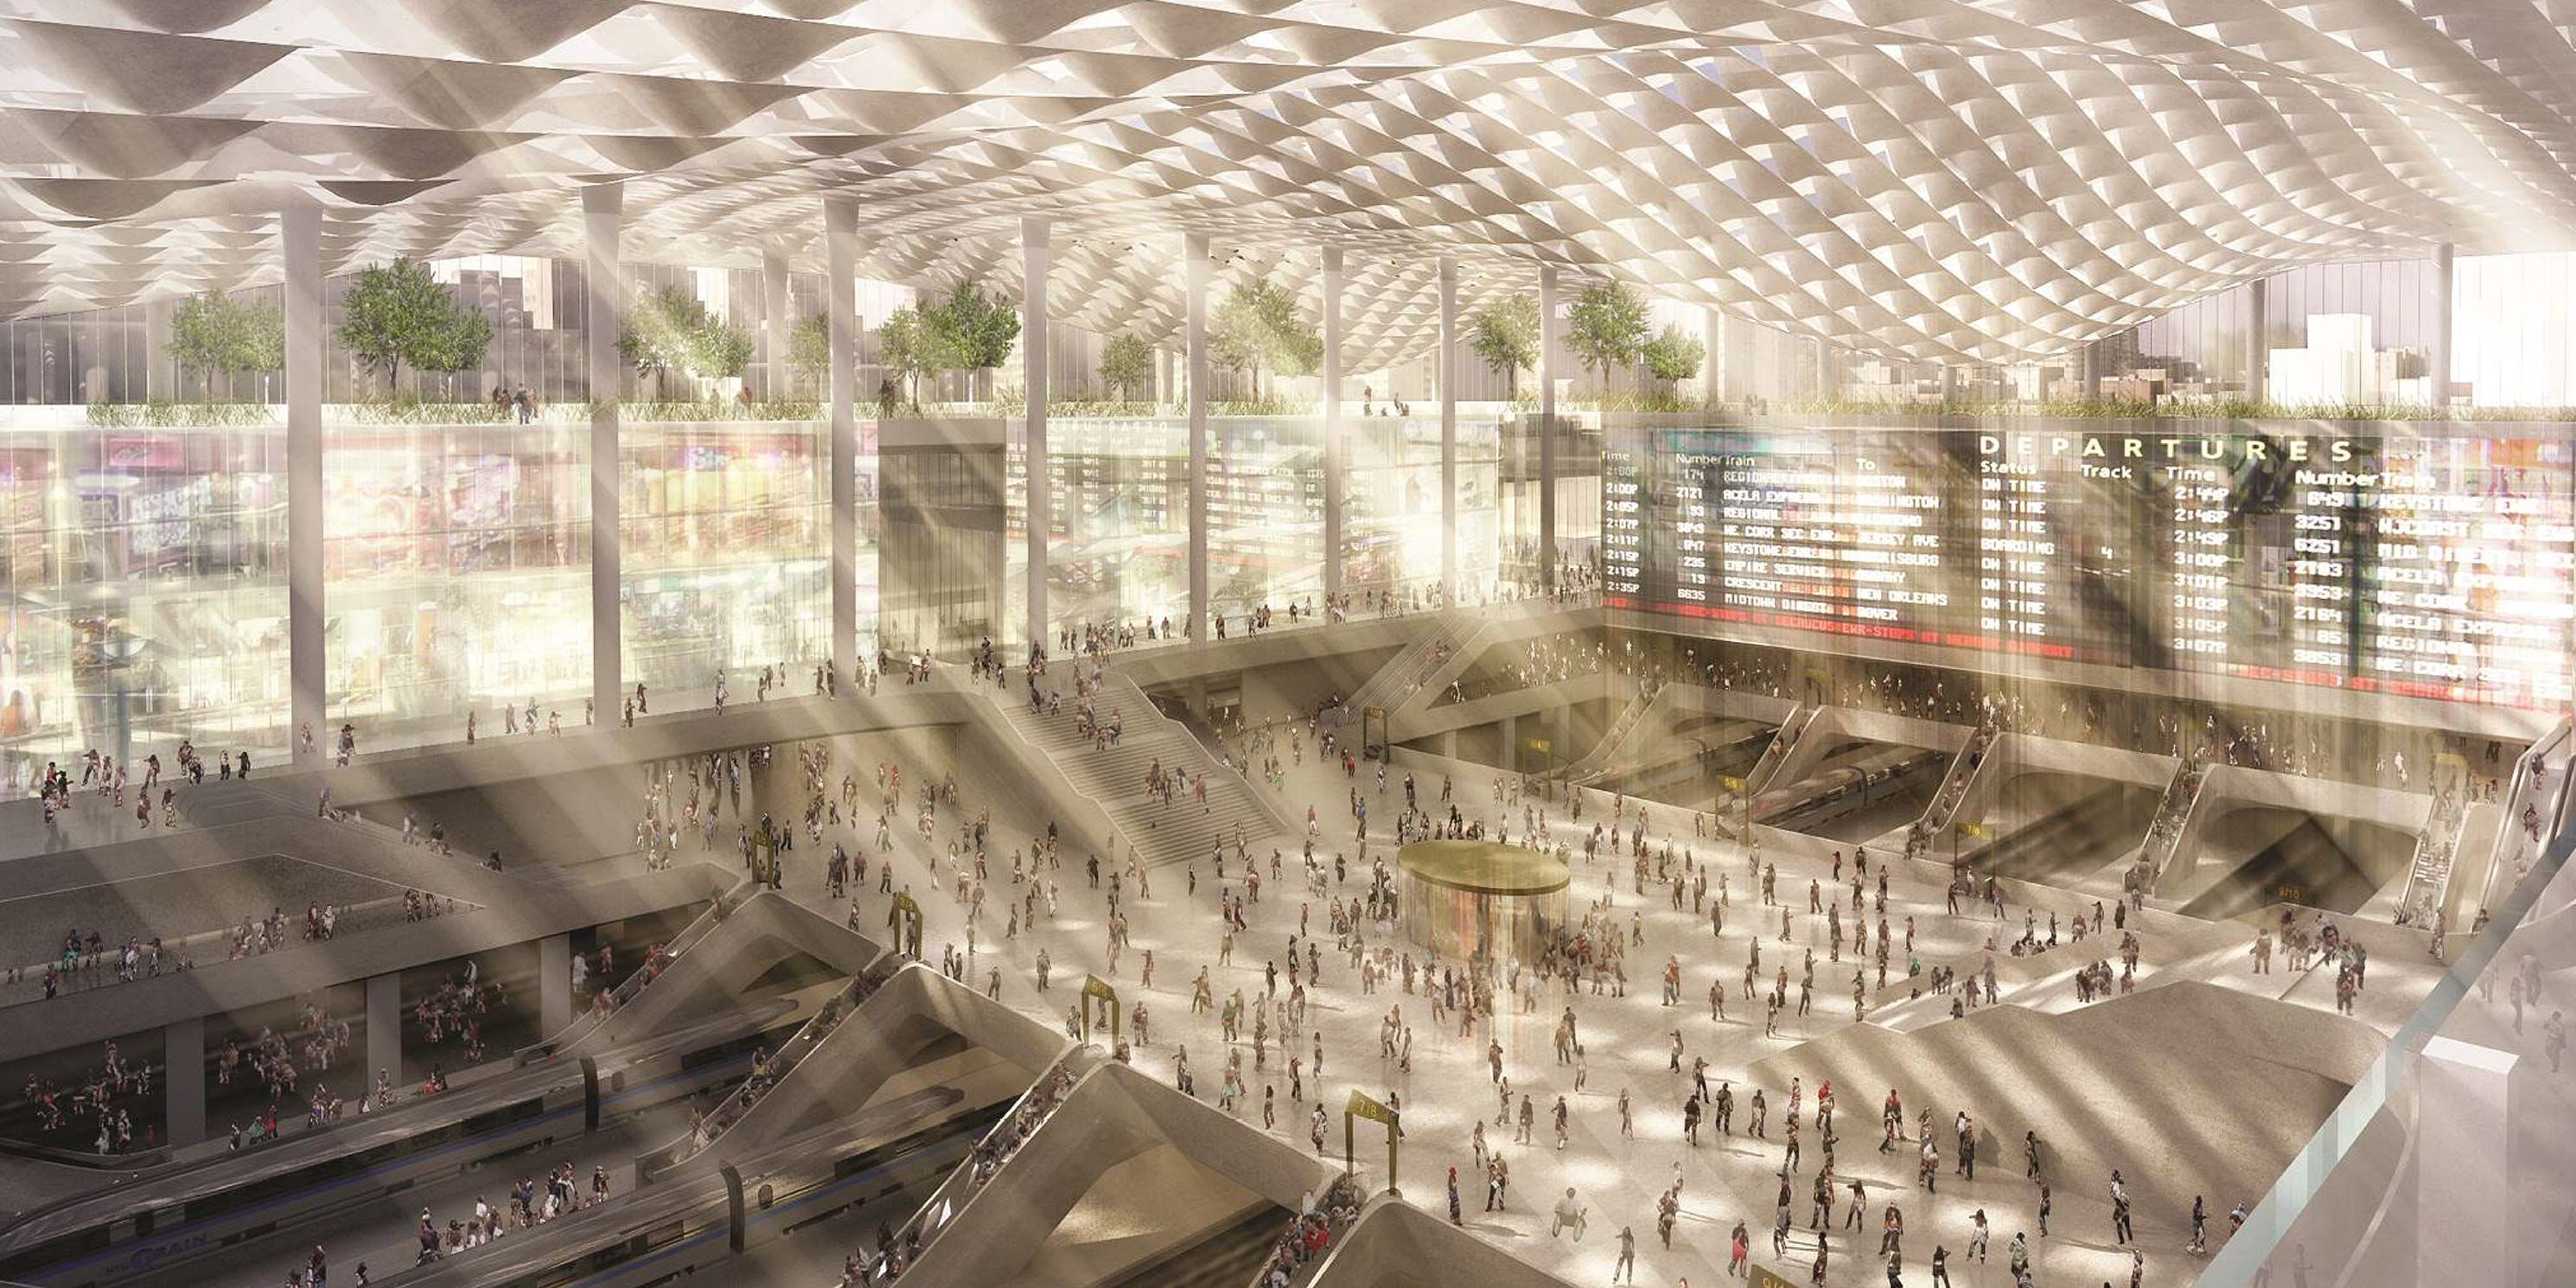 Interior rendering of a future Penn Station